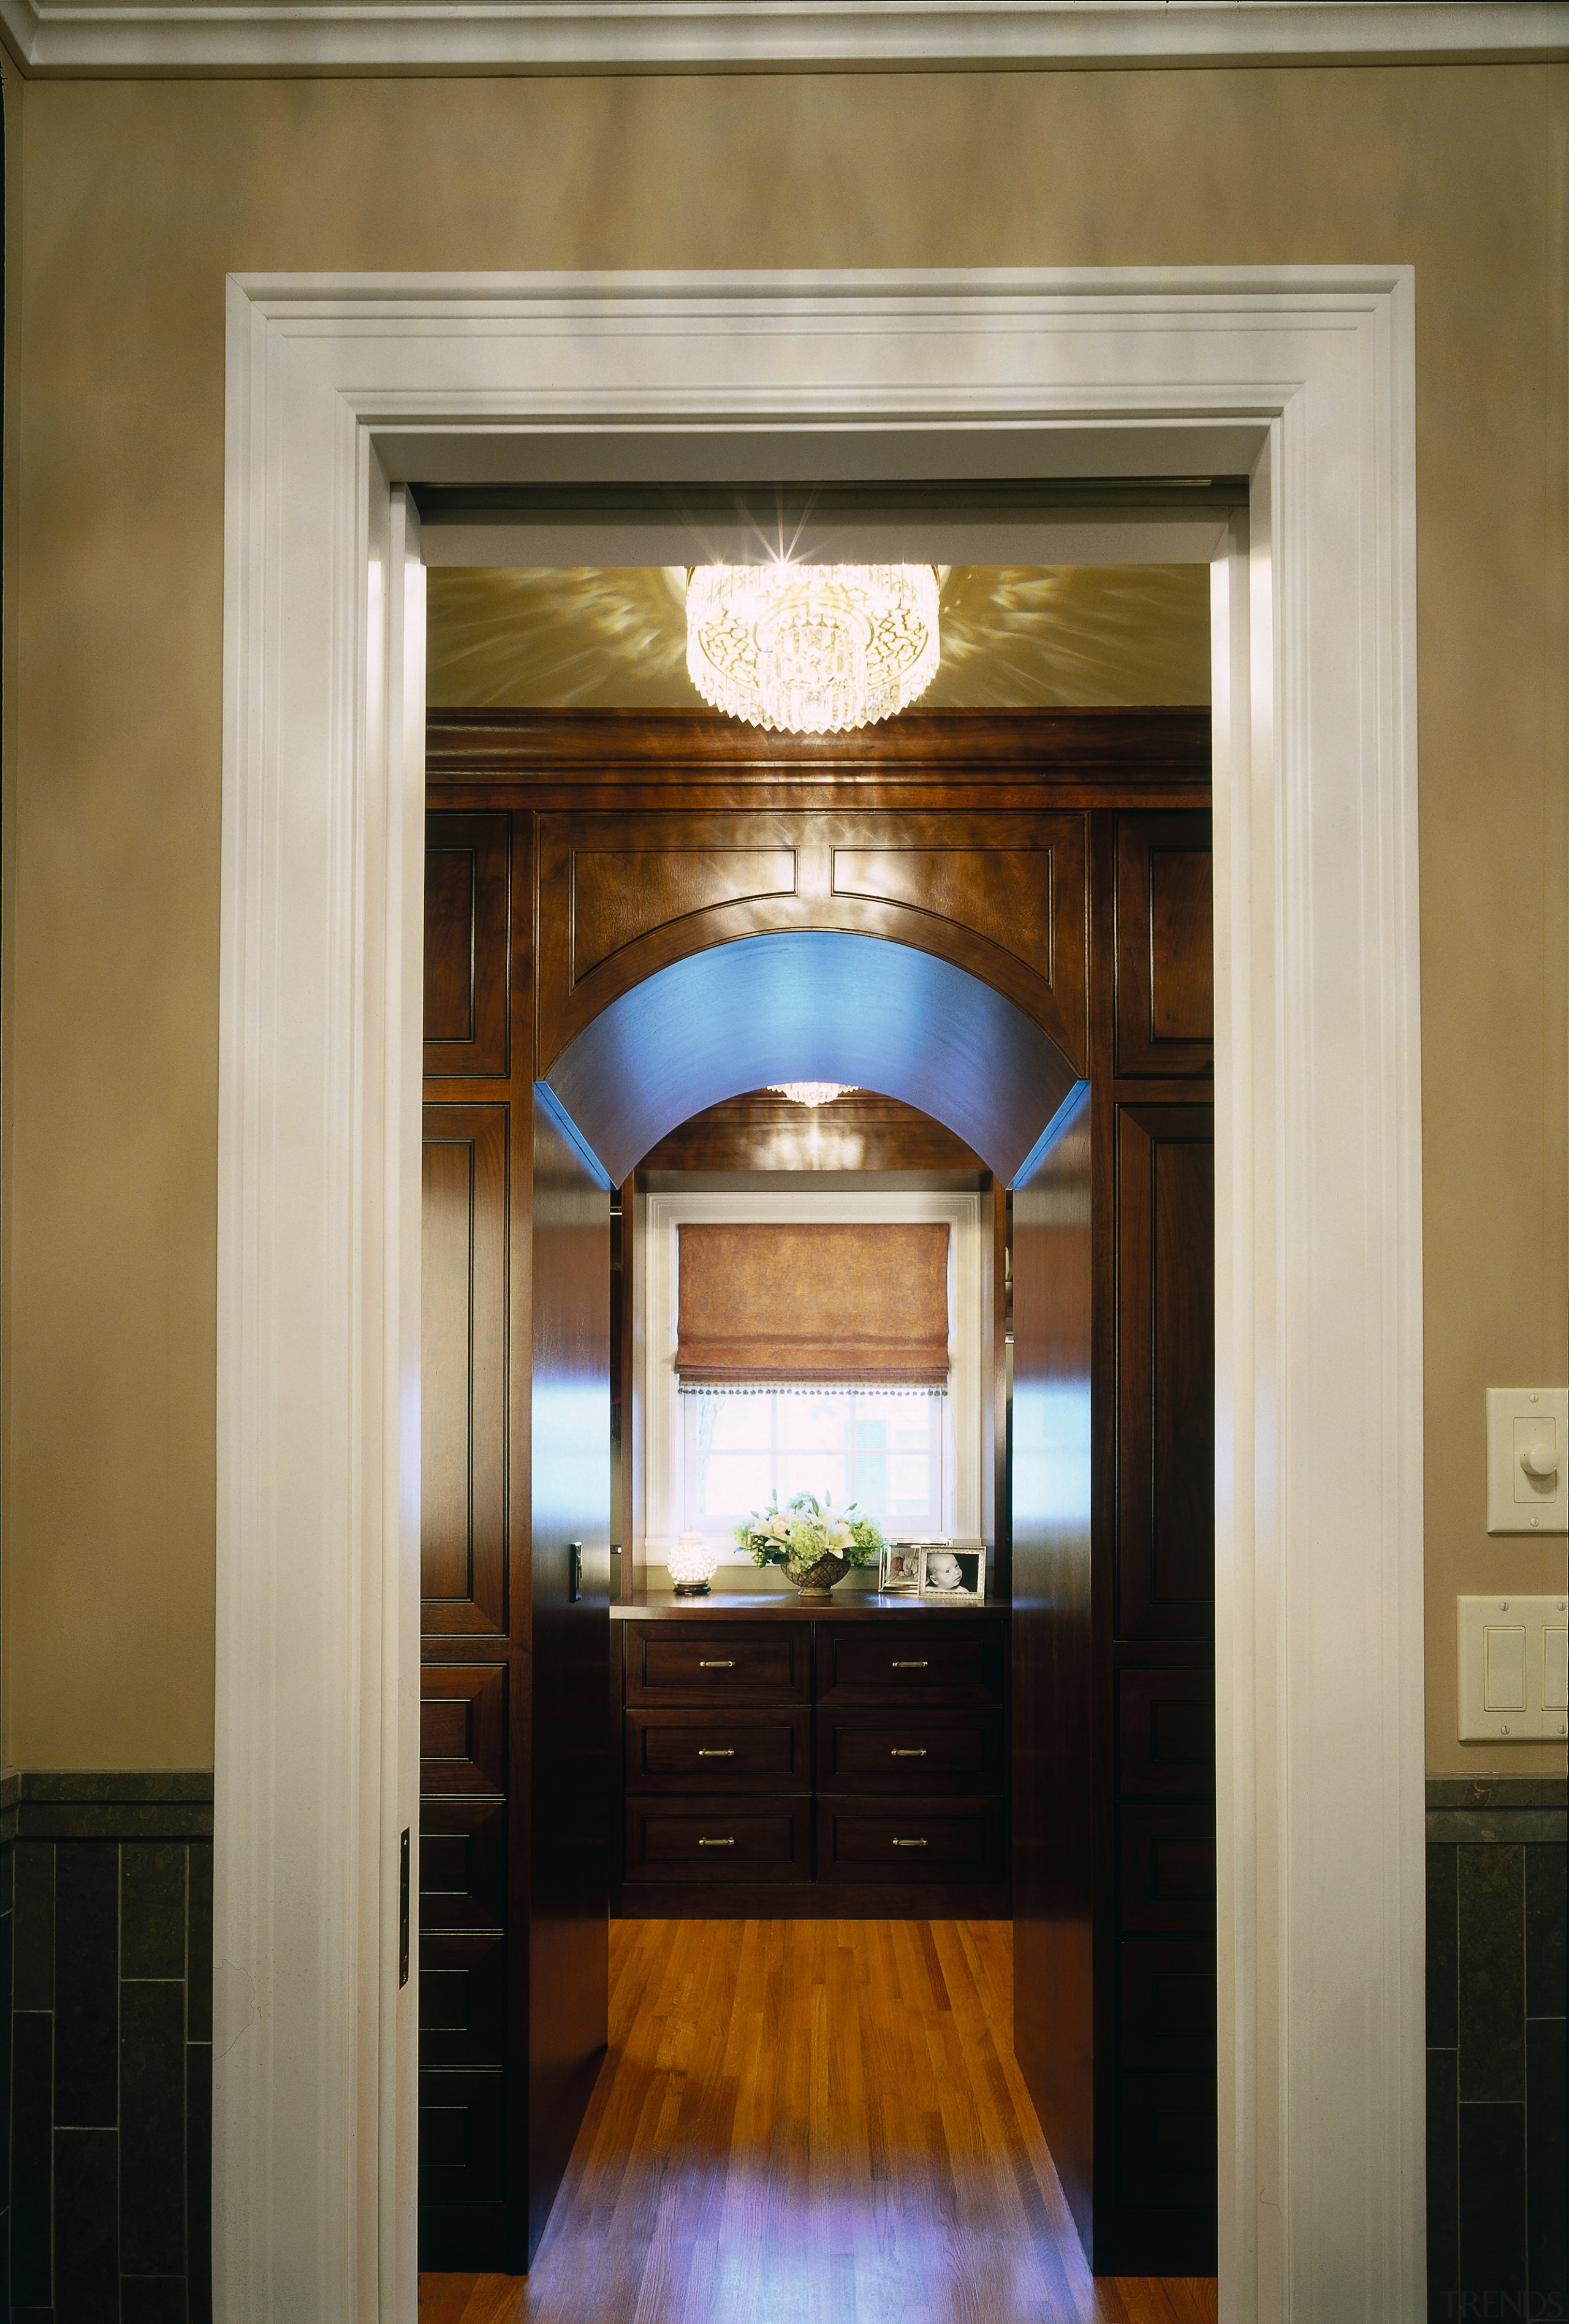 A view of the bathroom. - A view architecture, ceiling, door, home, interior design, lobby, wall, window, brown, gray